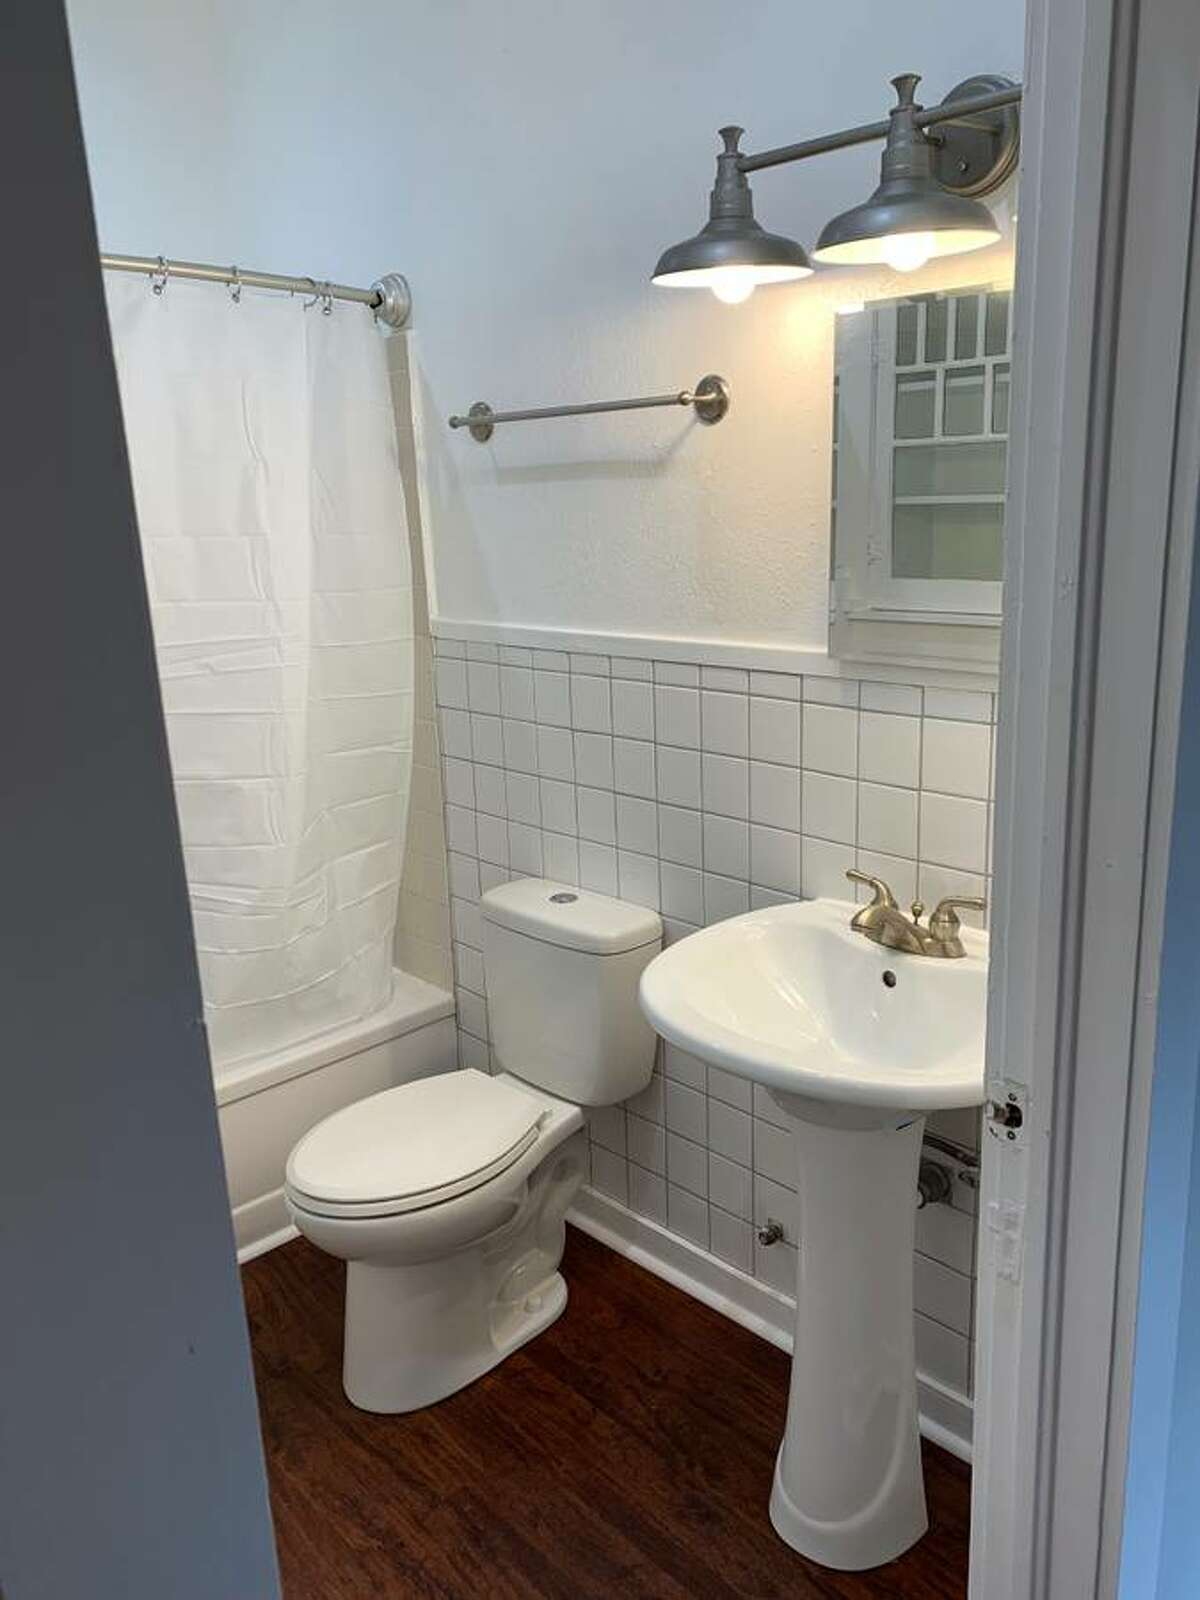 The white tiles and the pedestal sink - it's a pretty bathroom.